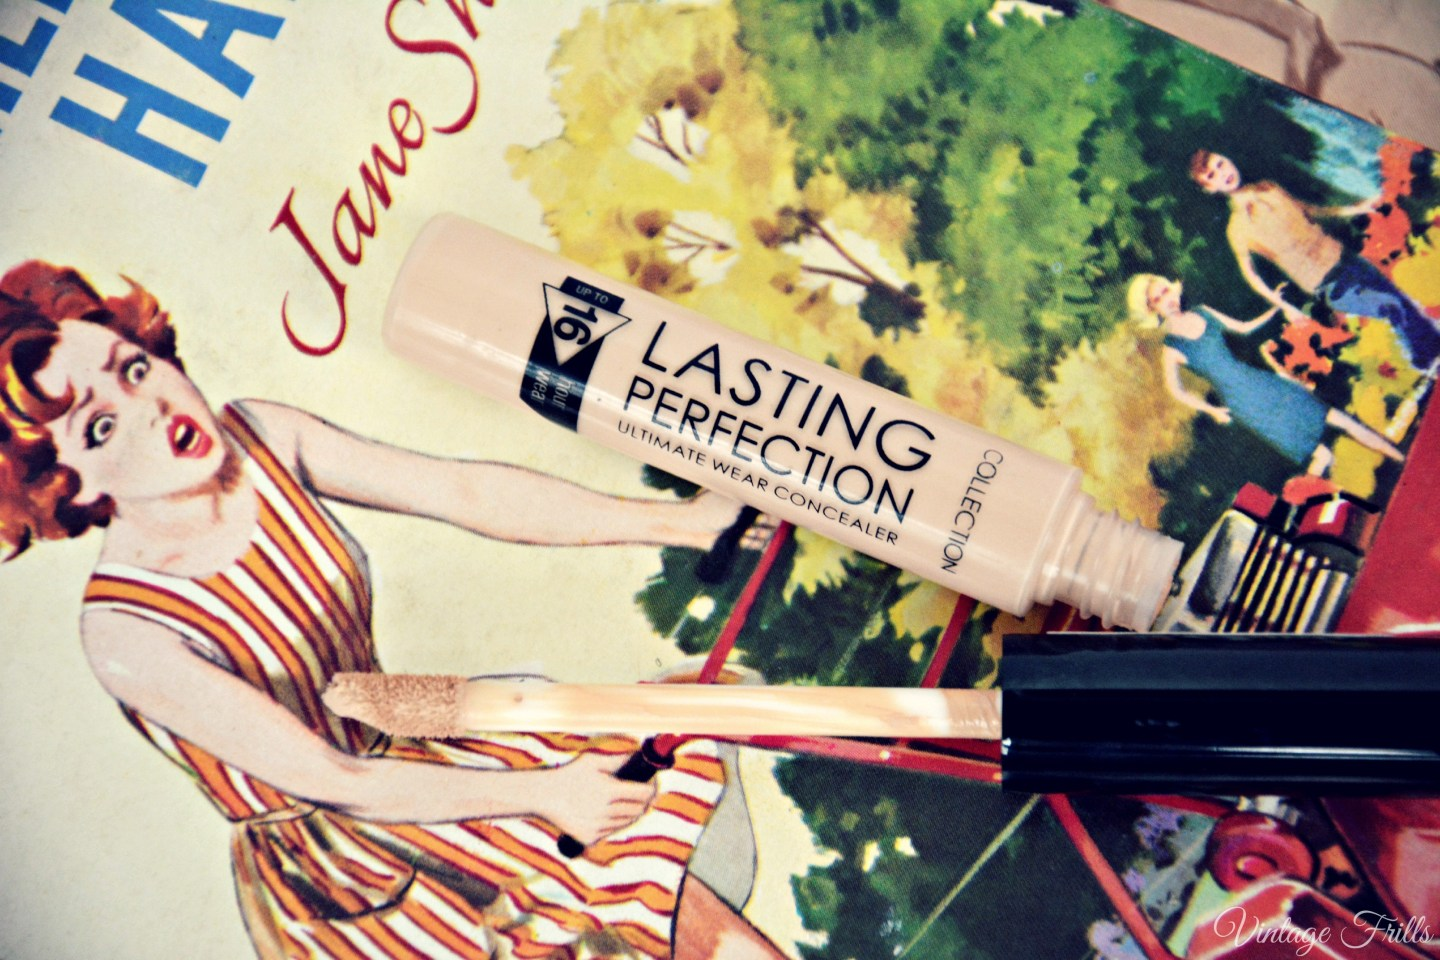 Boots Haul Collection lasting Perfection Concealer